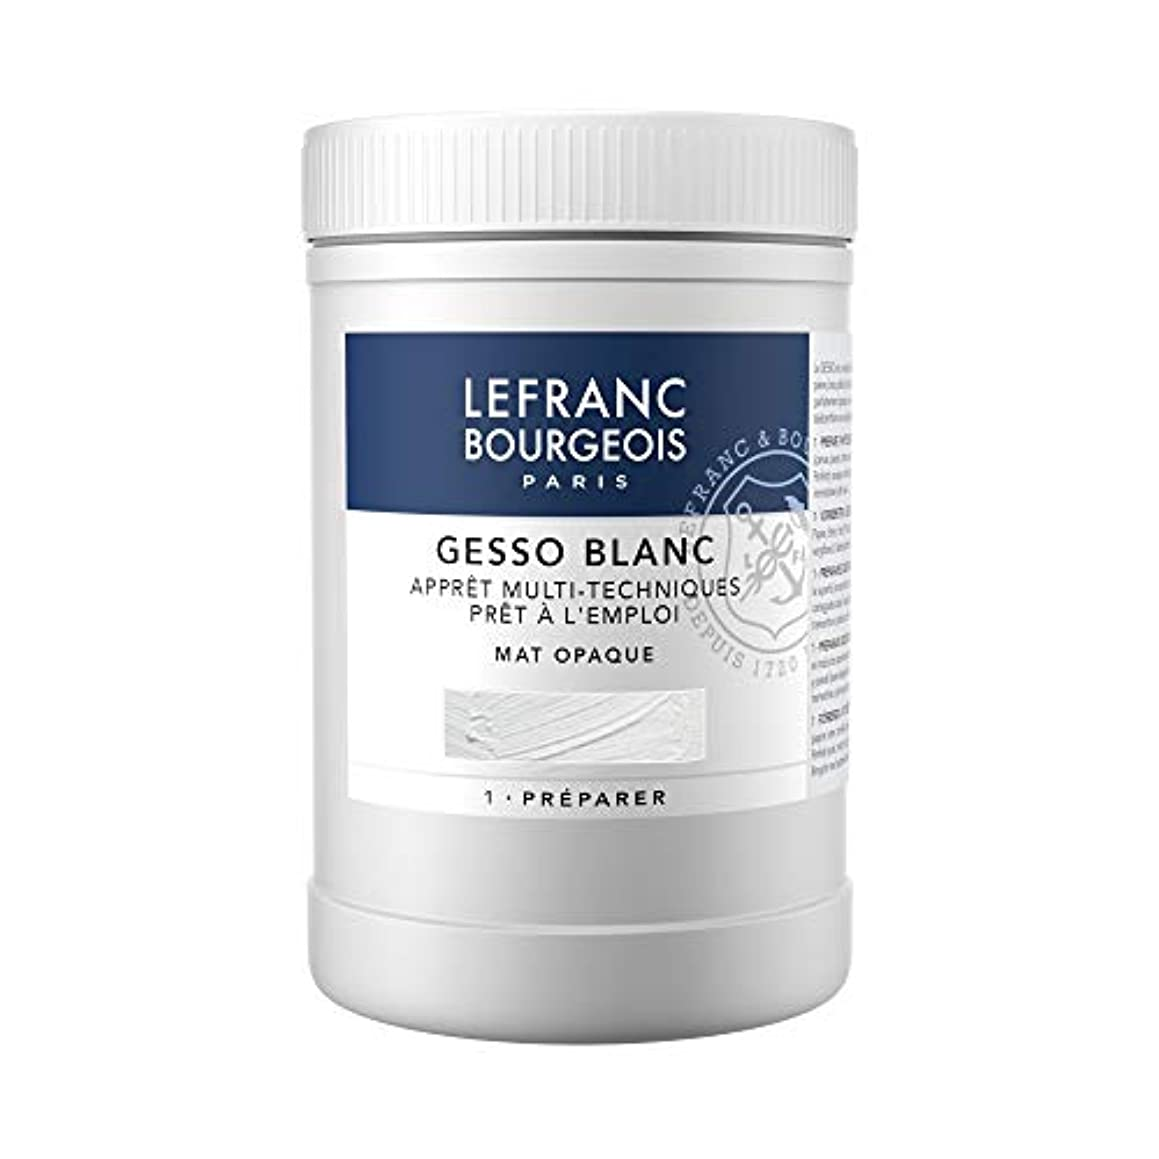 Lefranc & Bourgeois 300656?Gesso, White, Universalgrundierung Acrylic Painting, Ready to Use?–?Matte Opaque Opaque for Canvas, Paper, Stone, Wood, Plaster, 1000ml Topf